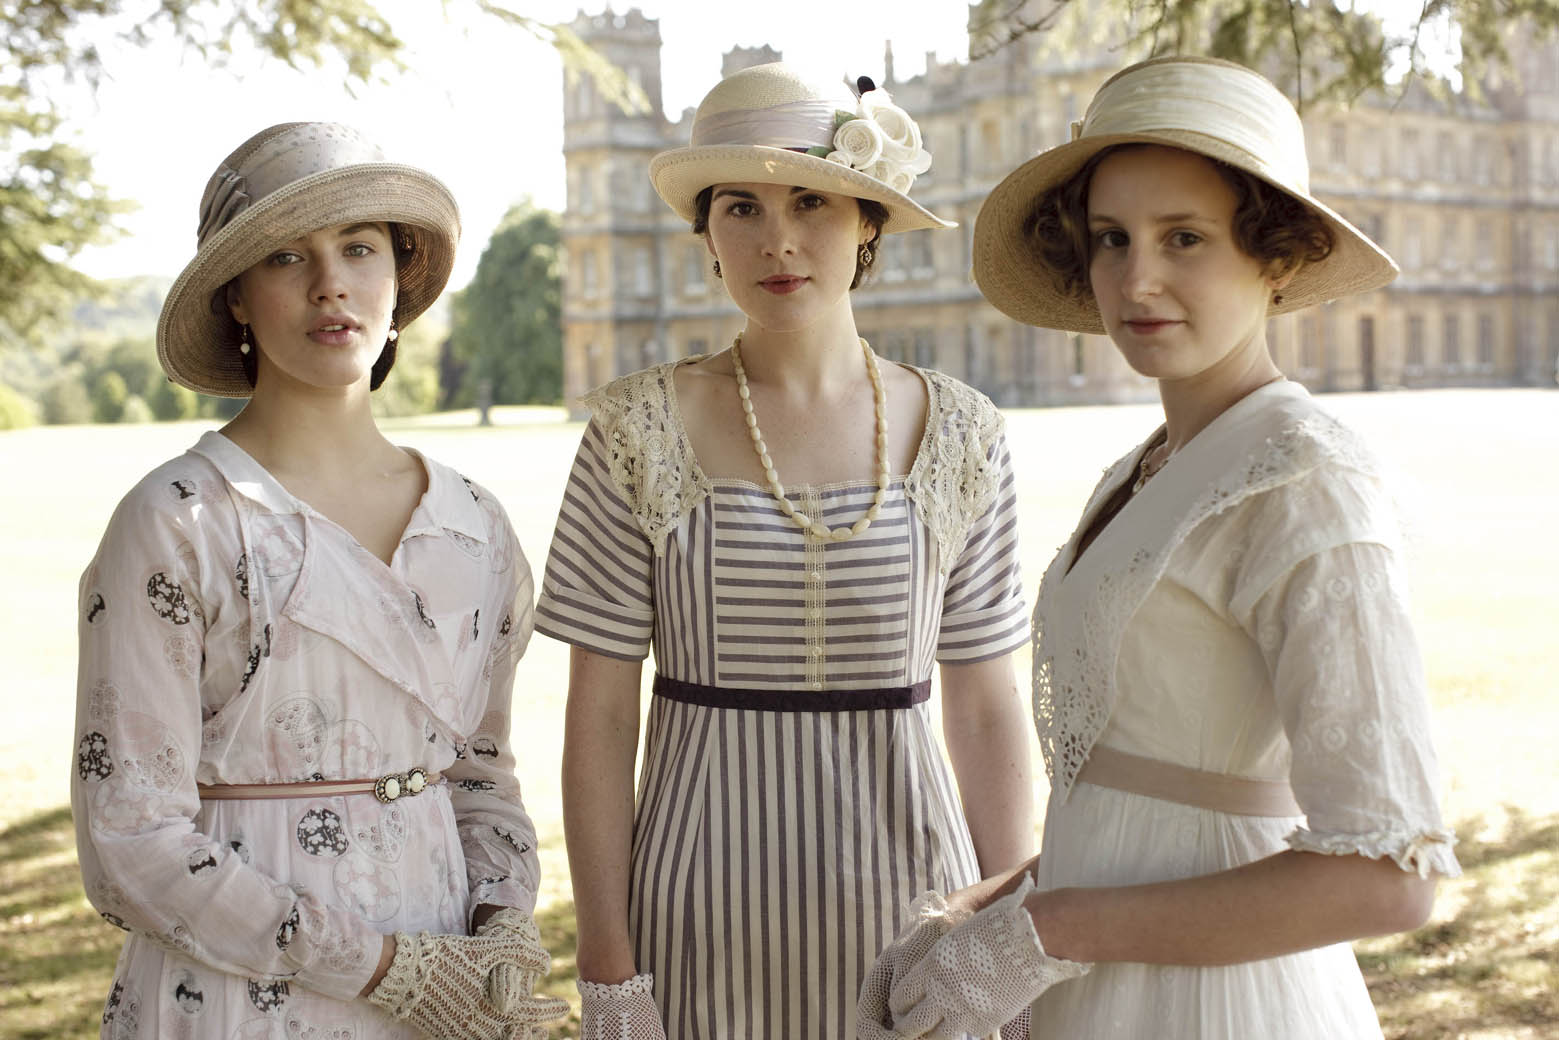 Getting Down with Downton